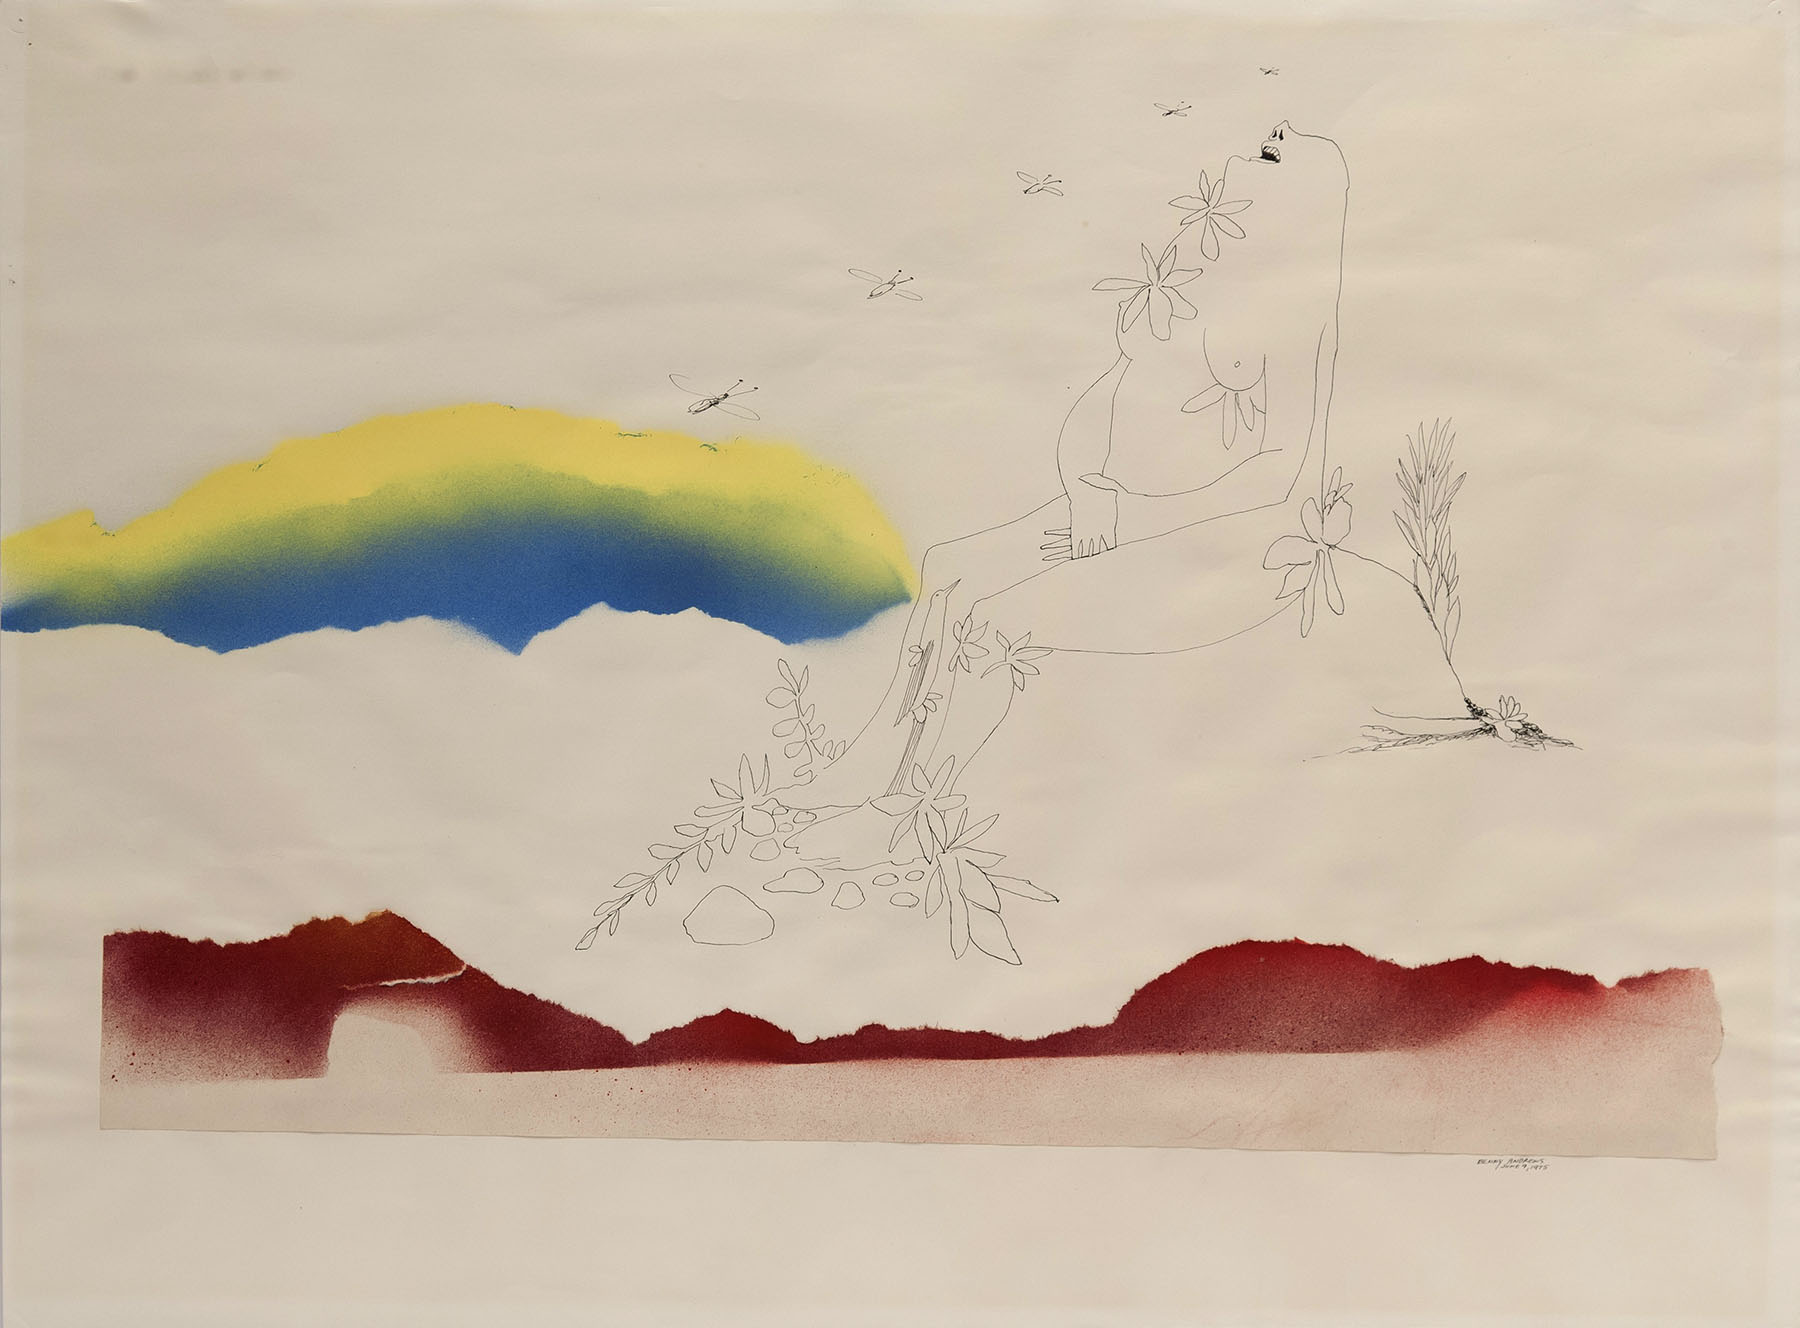 """Utopia Study #7, 1975 ink and watercolor on paper 17 x 23"""""""